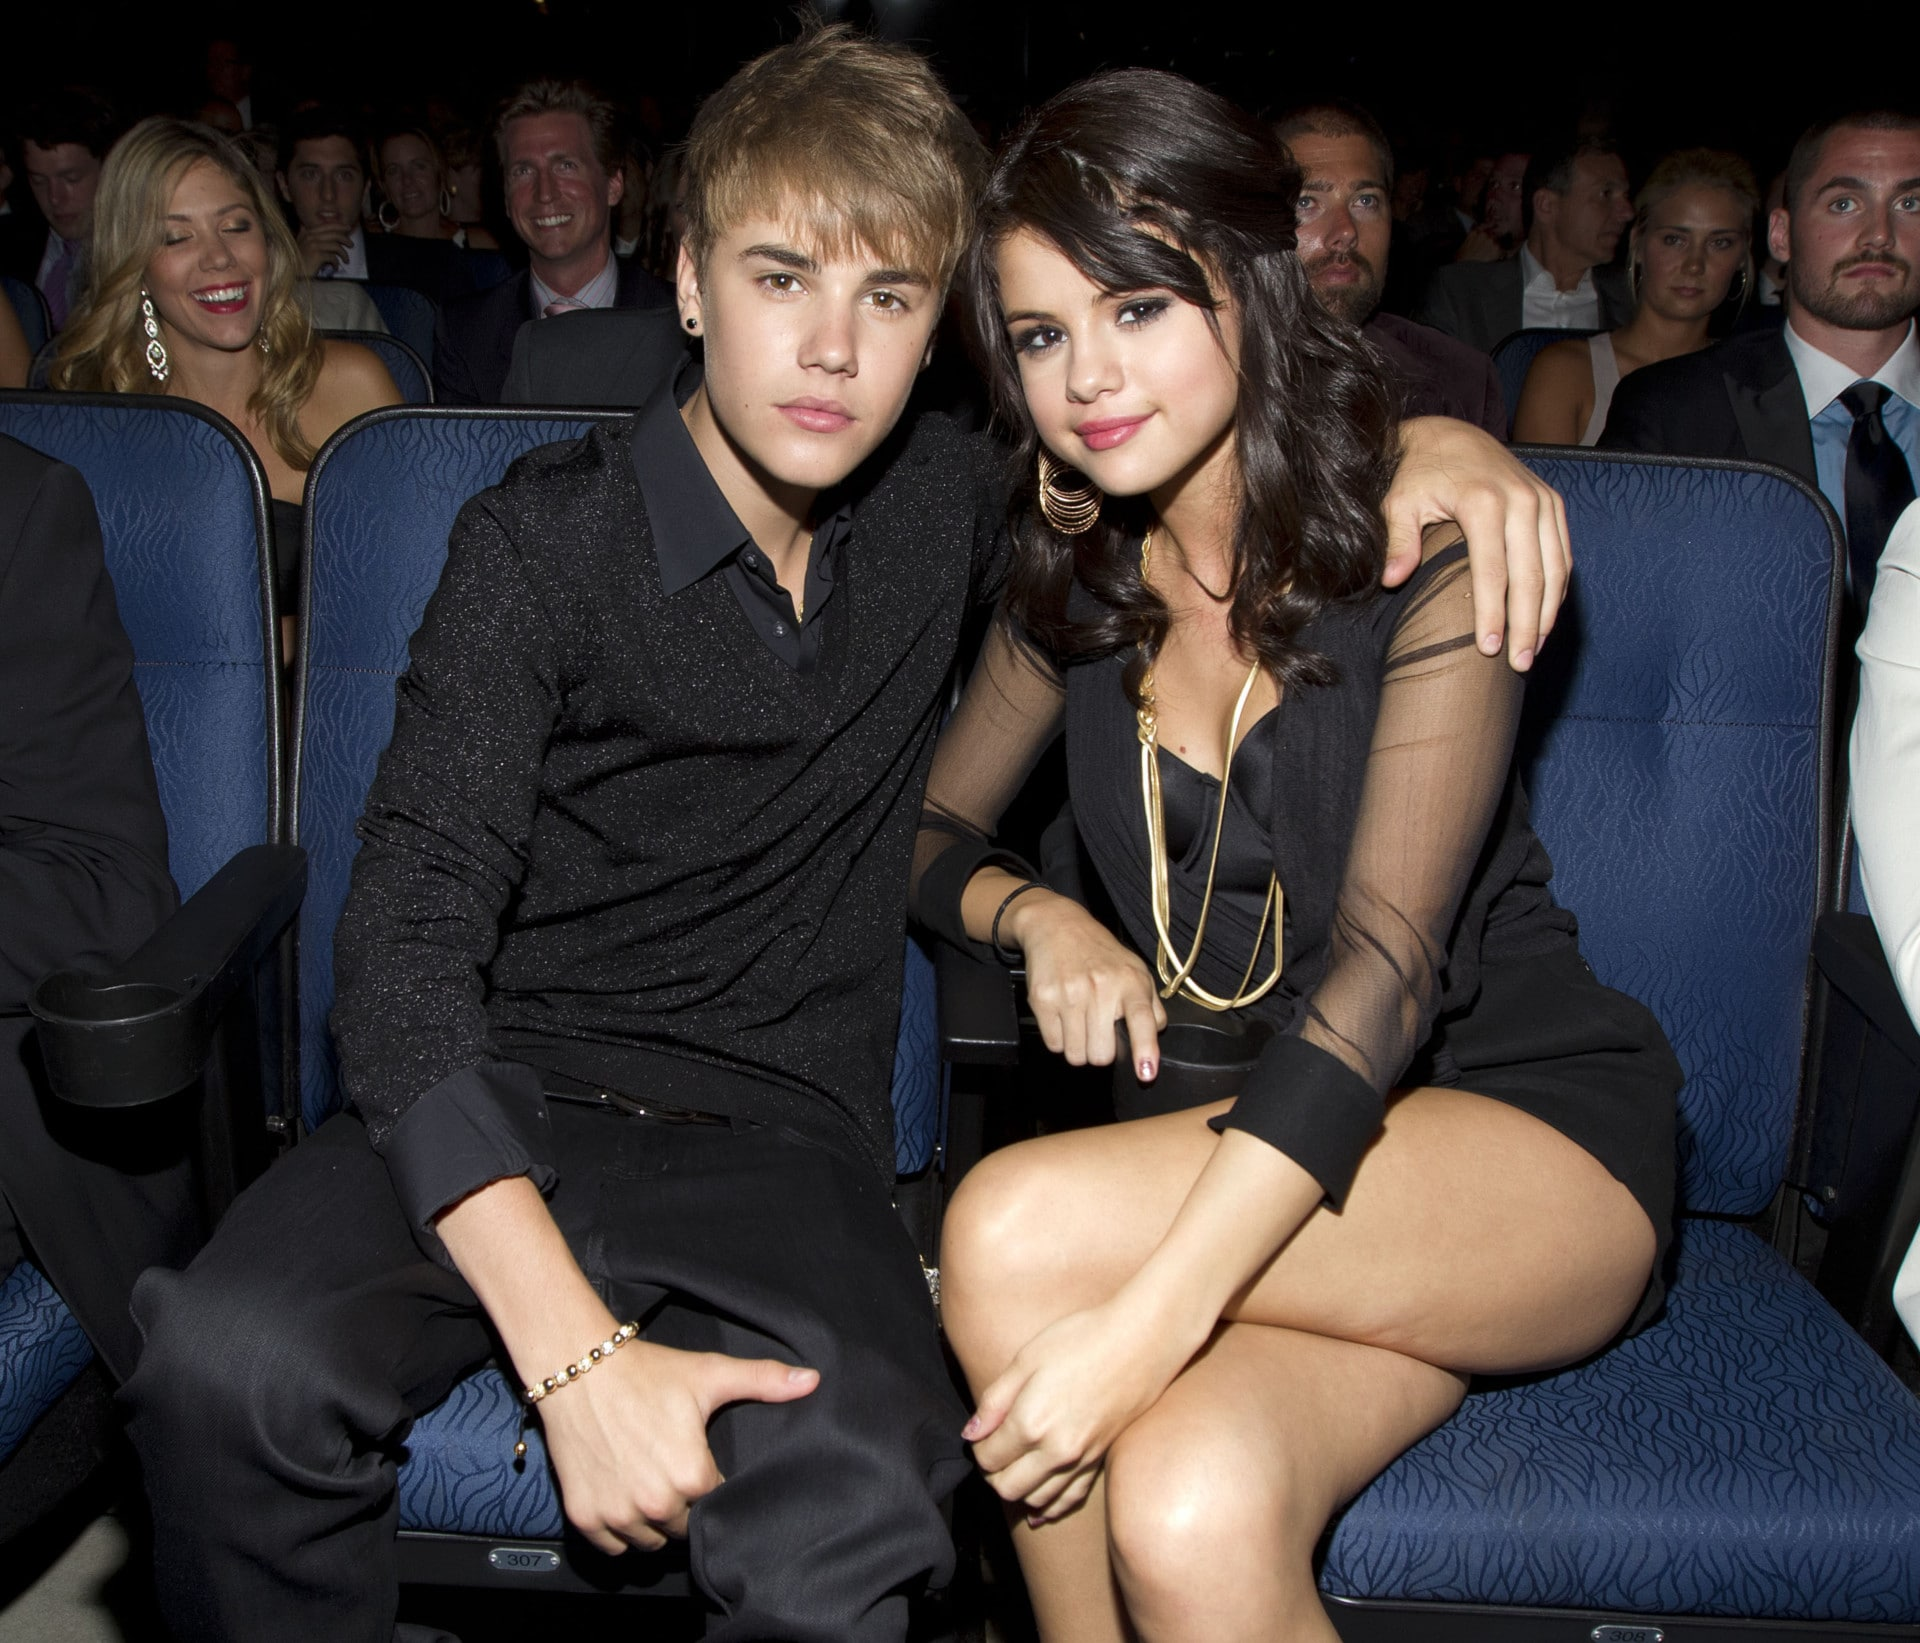 justin bieber who is he dating right now